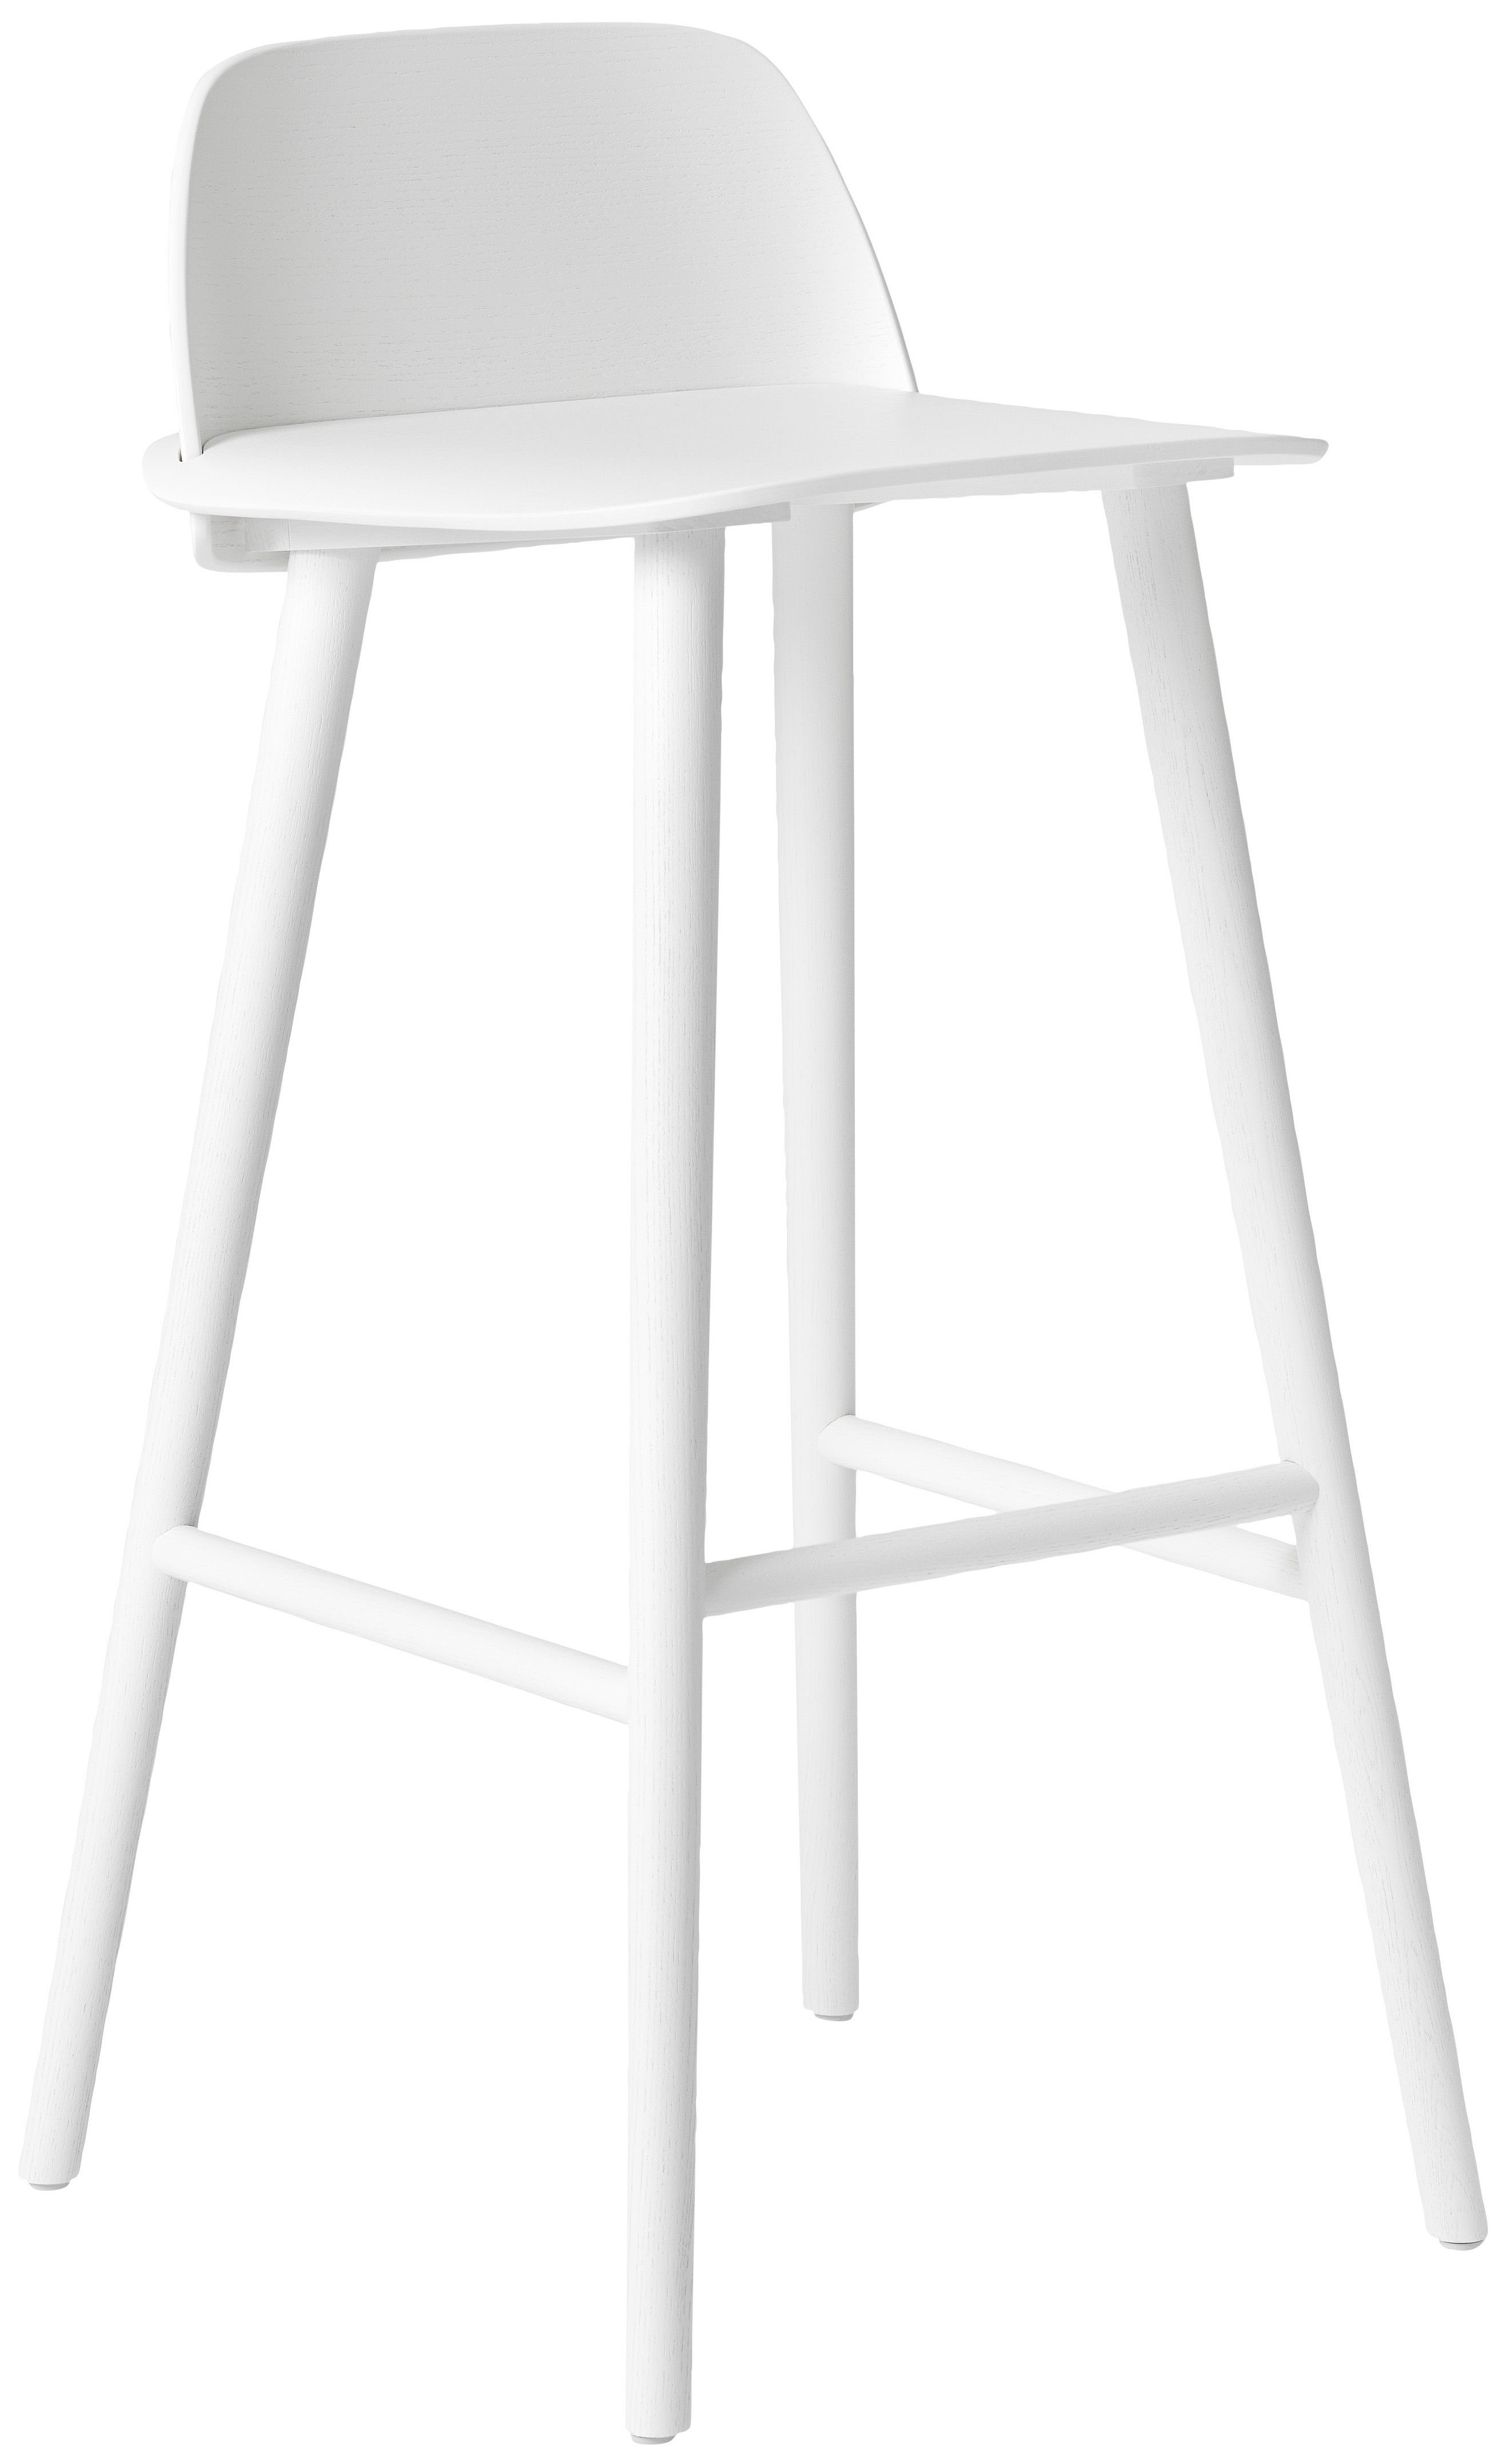 Chaise de bar nerd h 75 cm bois blanc muuto for Chaise bar blanc bois